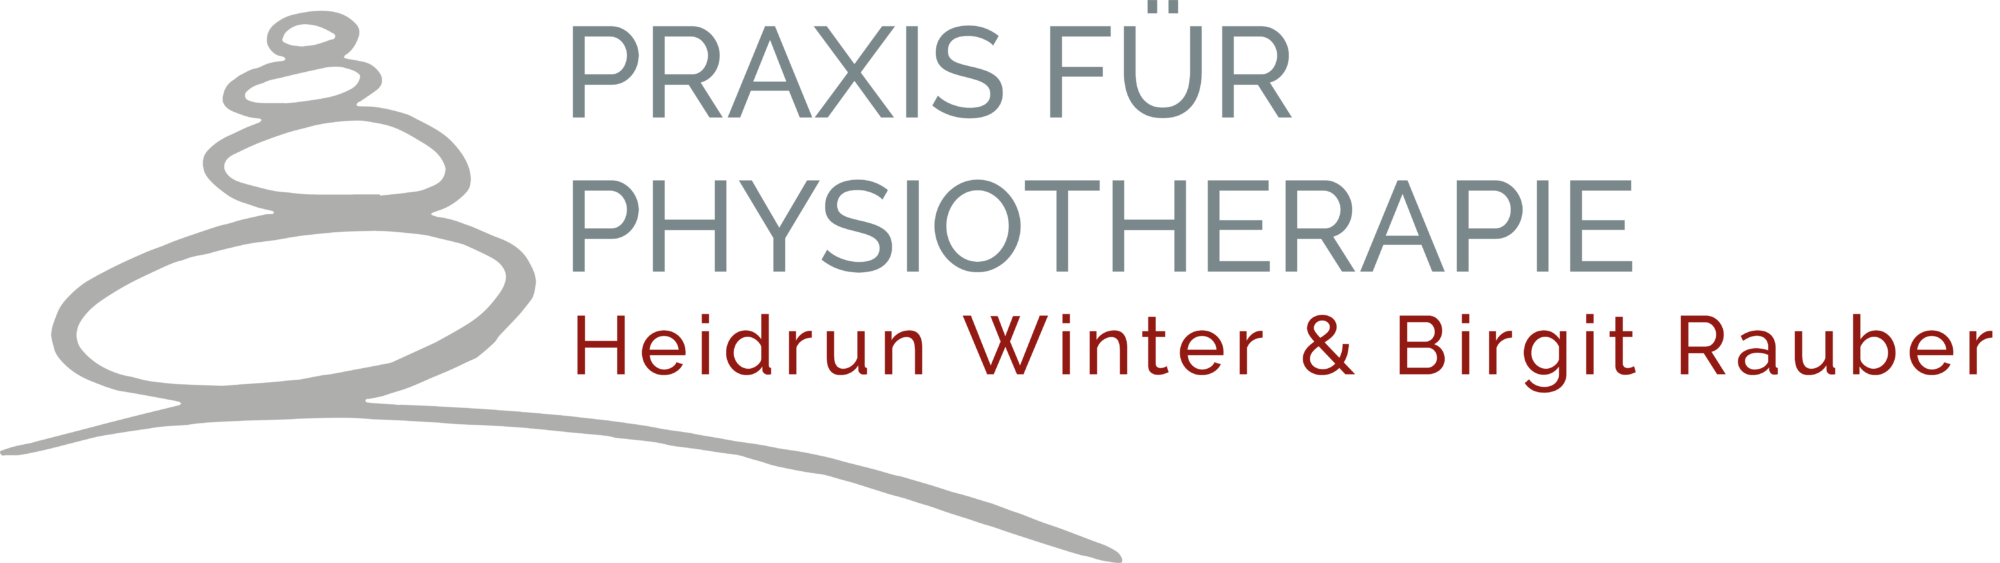 Praxis fuer Physiotherapie